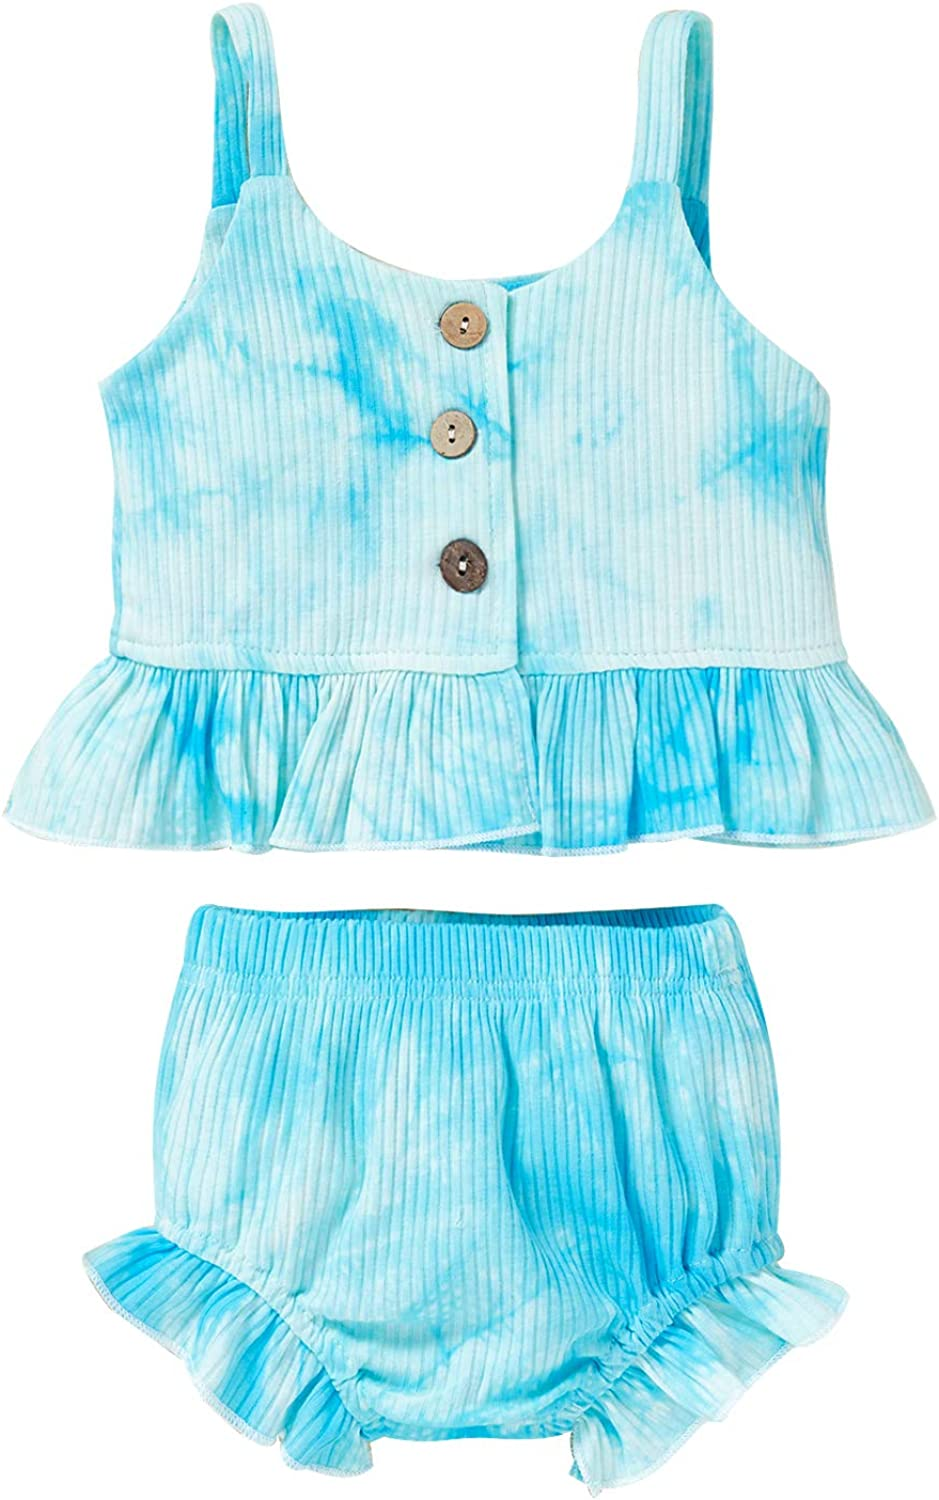 Viworld Baby Girl Summer Tie Dye Outfits Toddler Girl Sling Knitted Shirt Ruffle Shorts 2Pcs Clothes